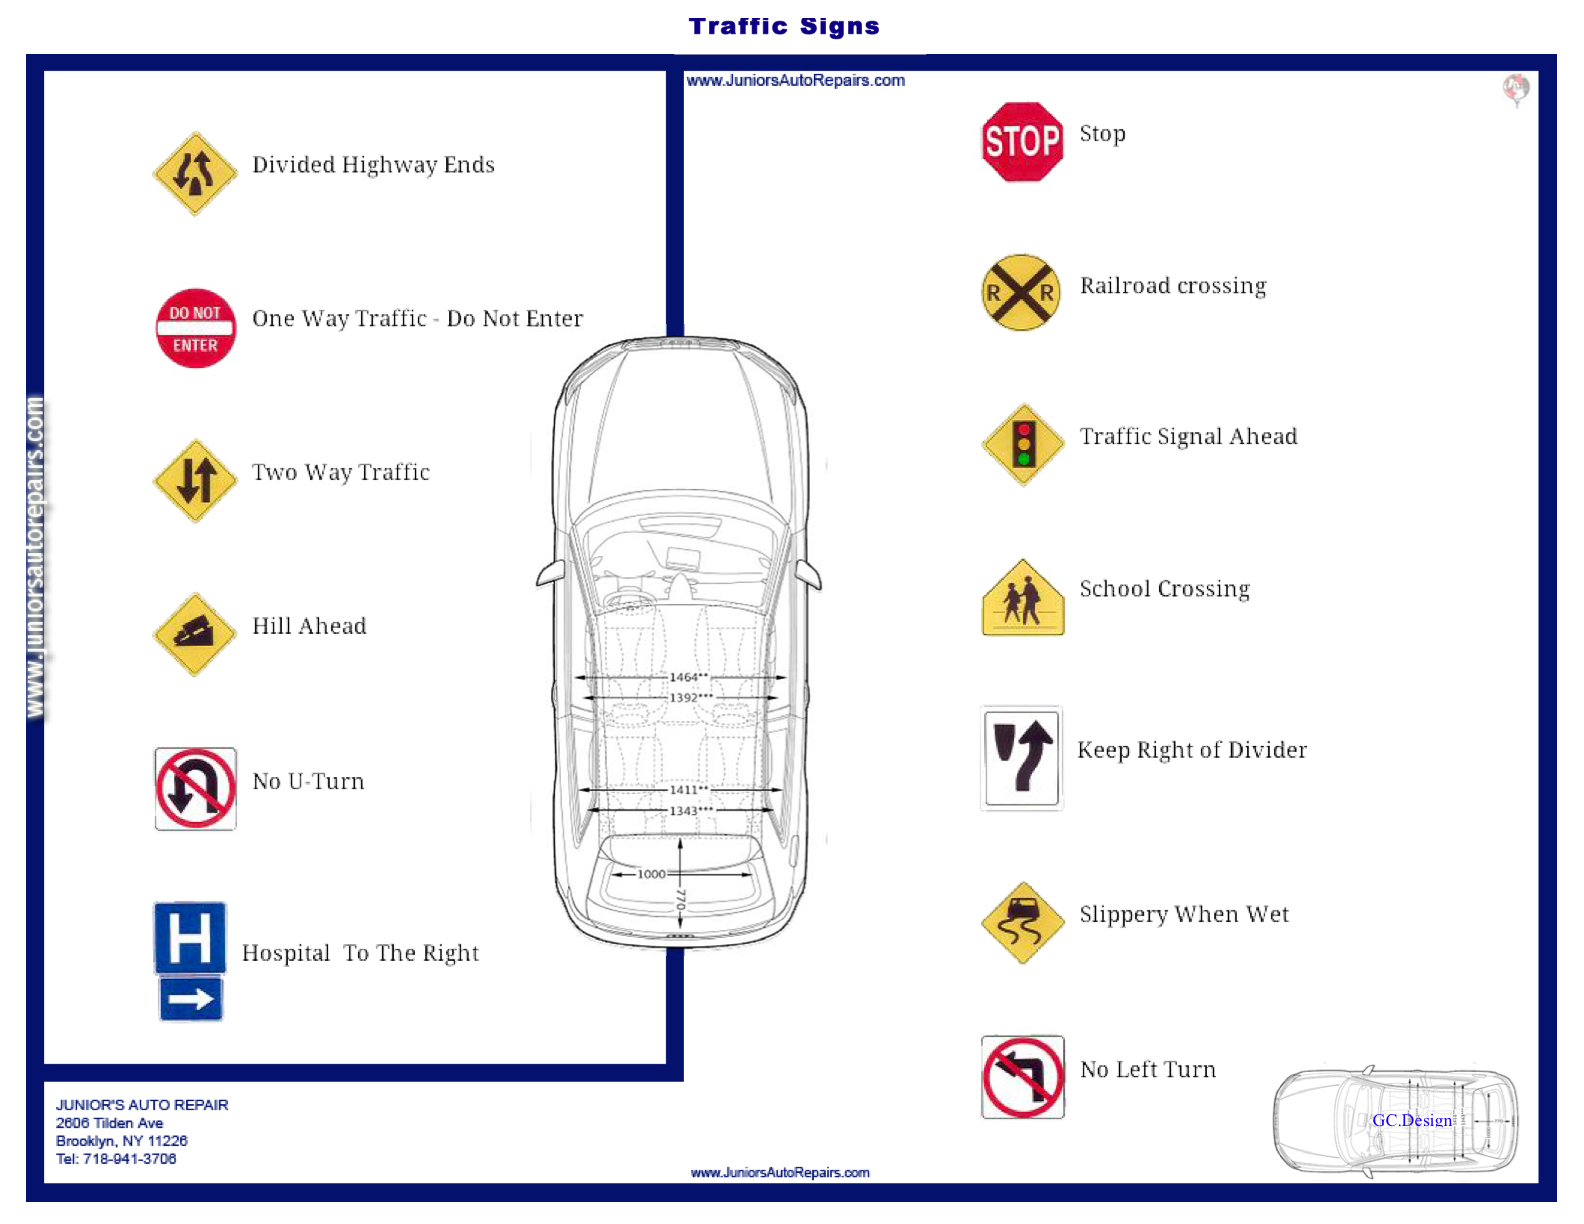 Motor vehicle signs test vehicle ideas for Motor vehicle drivers test